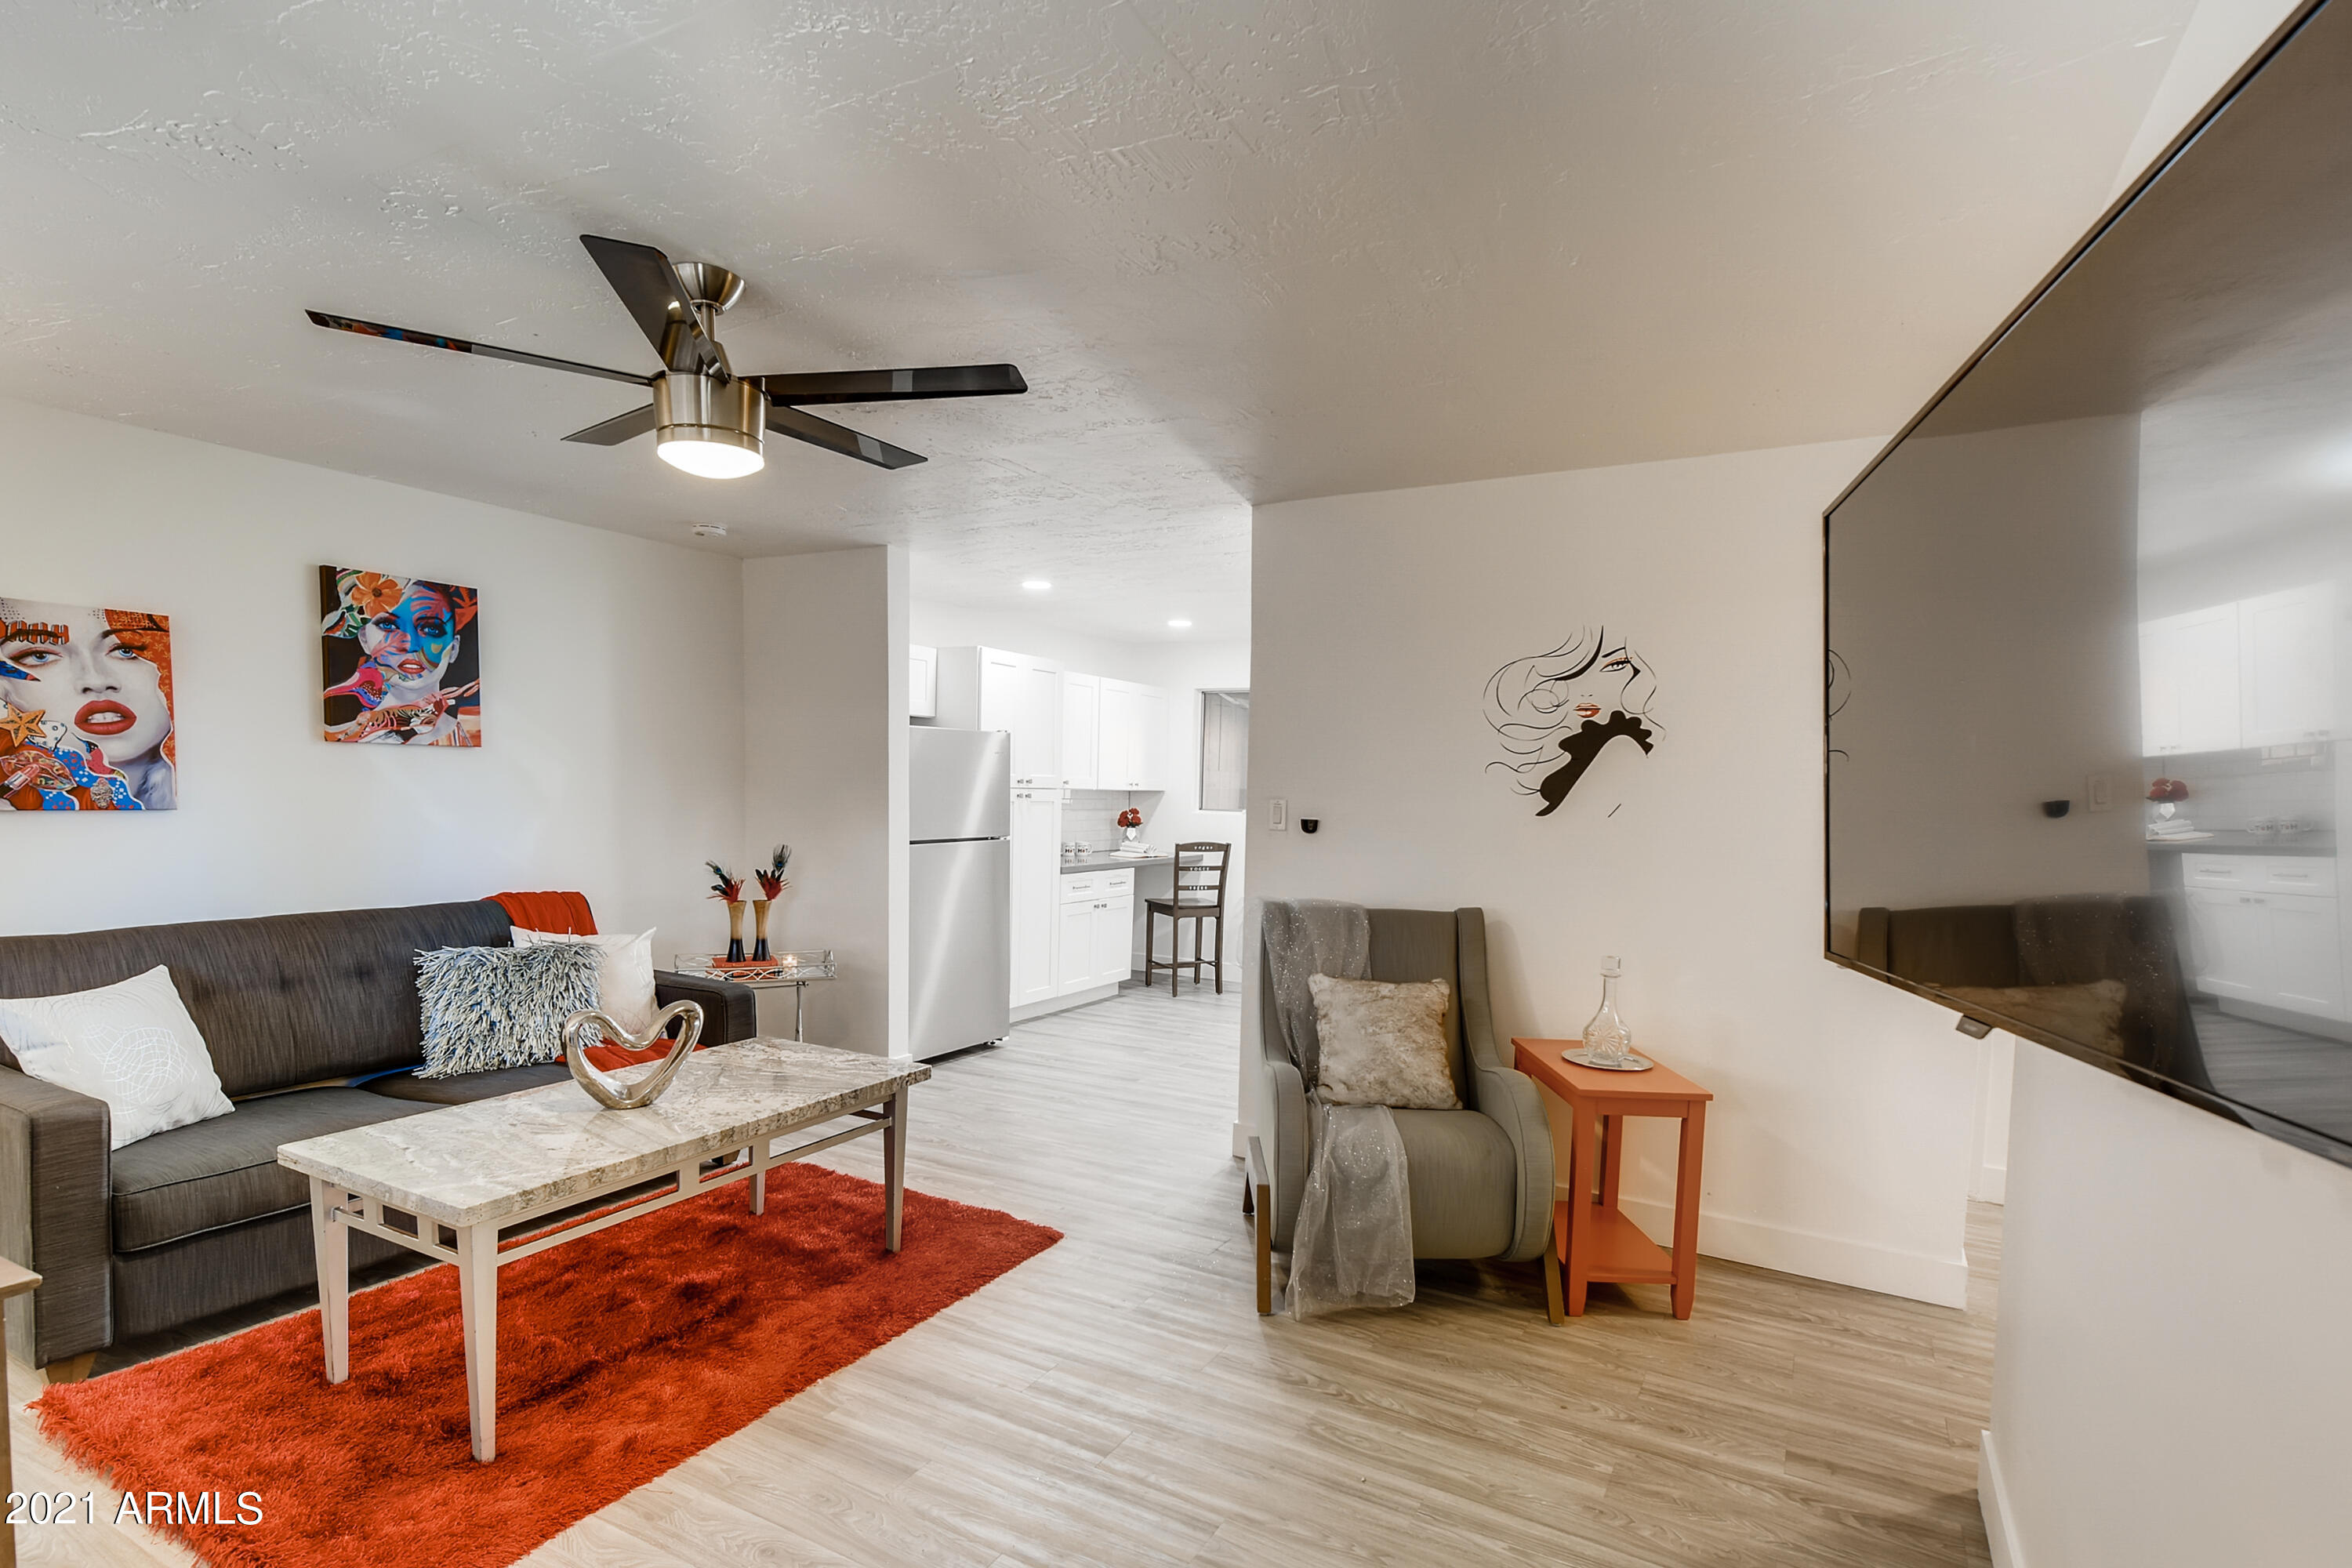 7832 E HEATHERBRAE Avenue # A, Scottsdale, AZ 85251, 2 Bedrooms Bedrooms, ,Residential Lease,For Rent,7832 E HEATHERBRAE Avenue # A,6251524